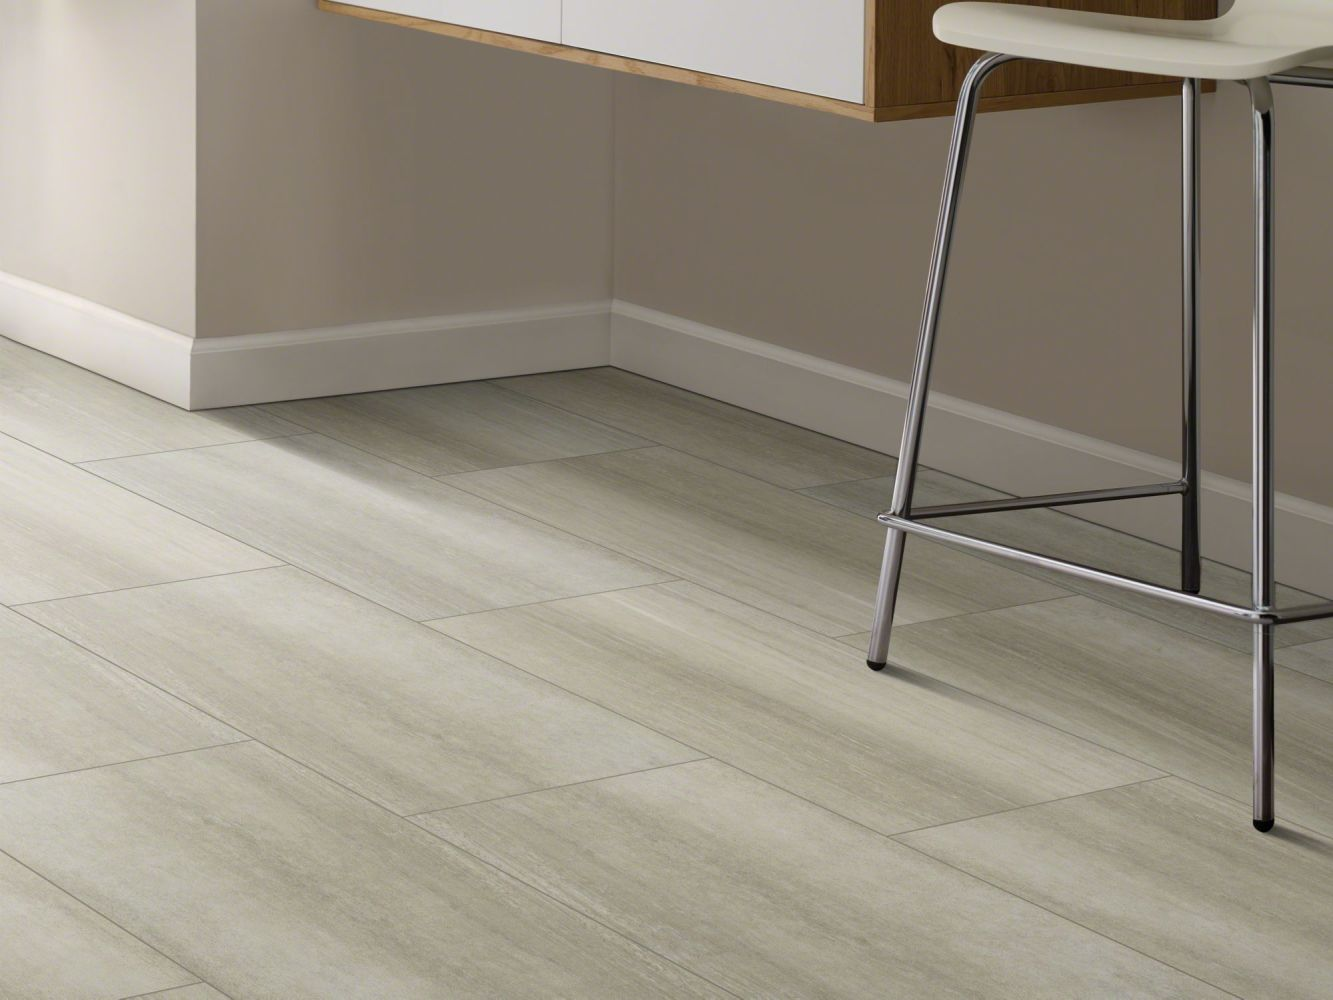 Shaw Floors Resilient Residential Paragon Tile Plus Ash 01008_1022V